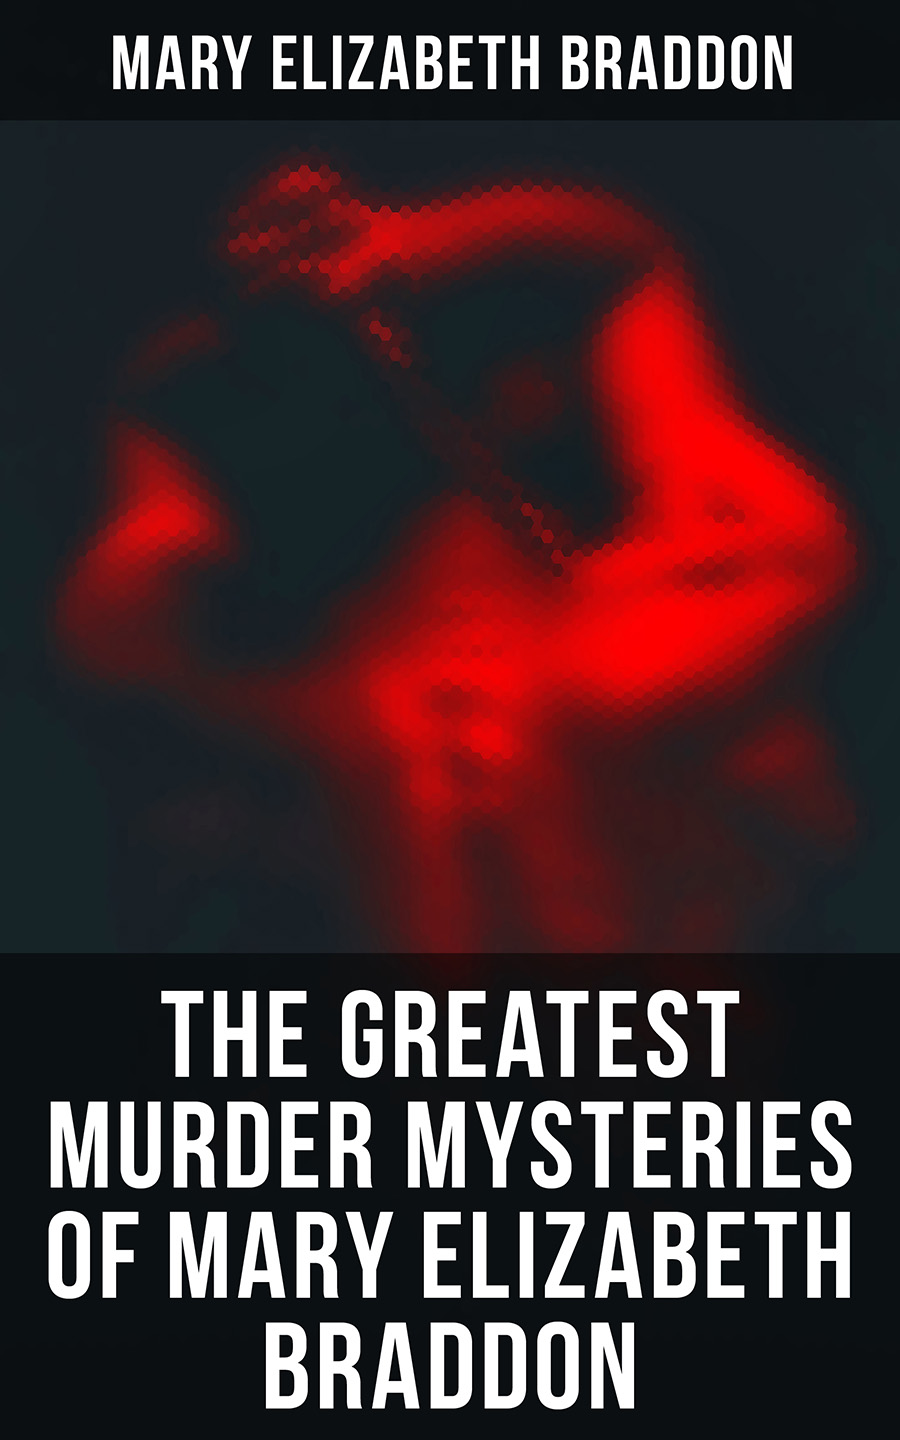 Mary Elizabeth Braddon The Greatest Murder Mysteries of Mary Elizabeth Braddon jill nelson elizabeth legacy of lies